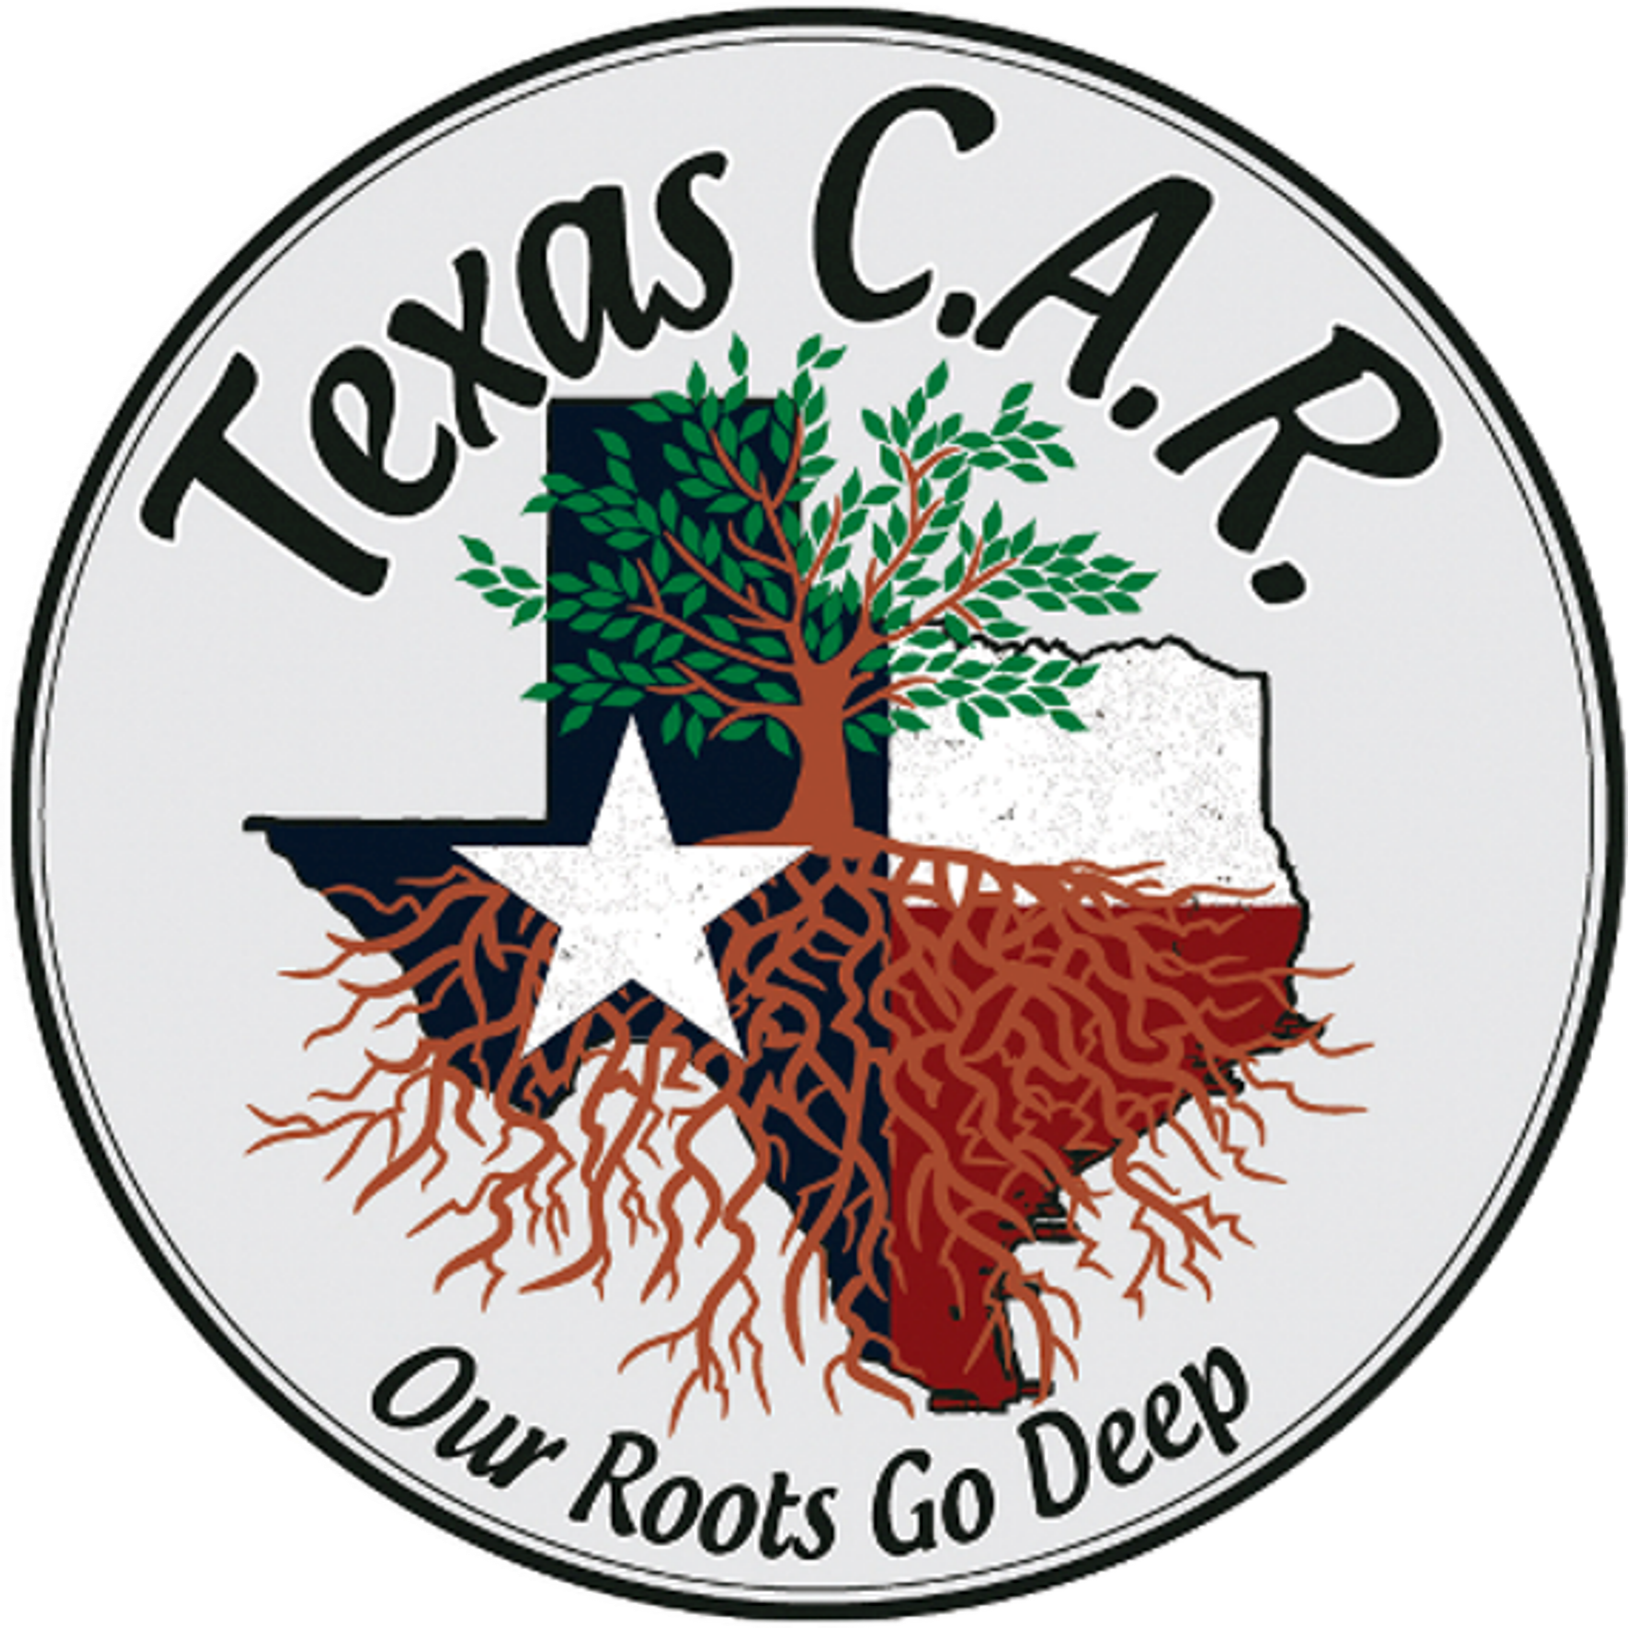 Roots clipart root texas. Our go deep